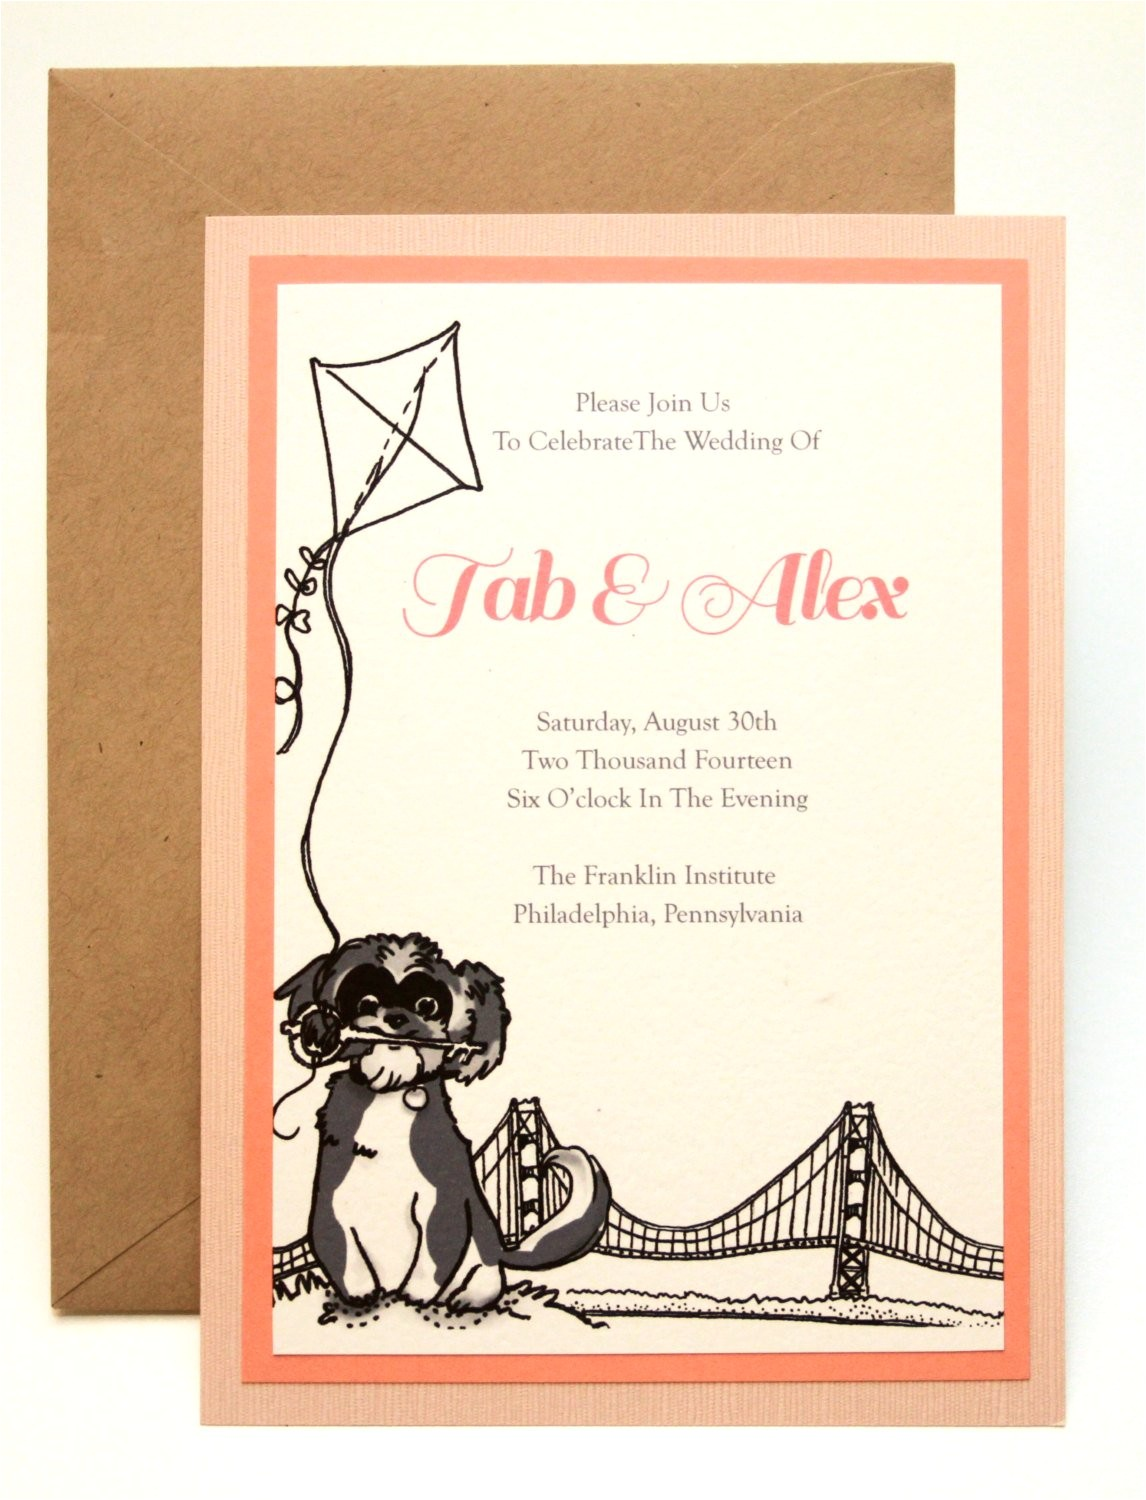 dog cat custom wedding invitation set pet illustration pet wedding invite dog wedding invitation stationery party etsy weddings